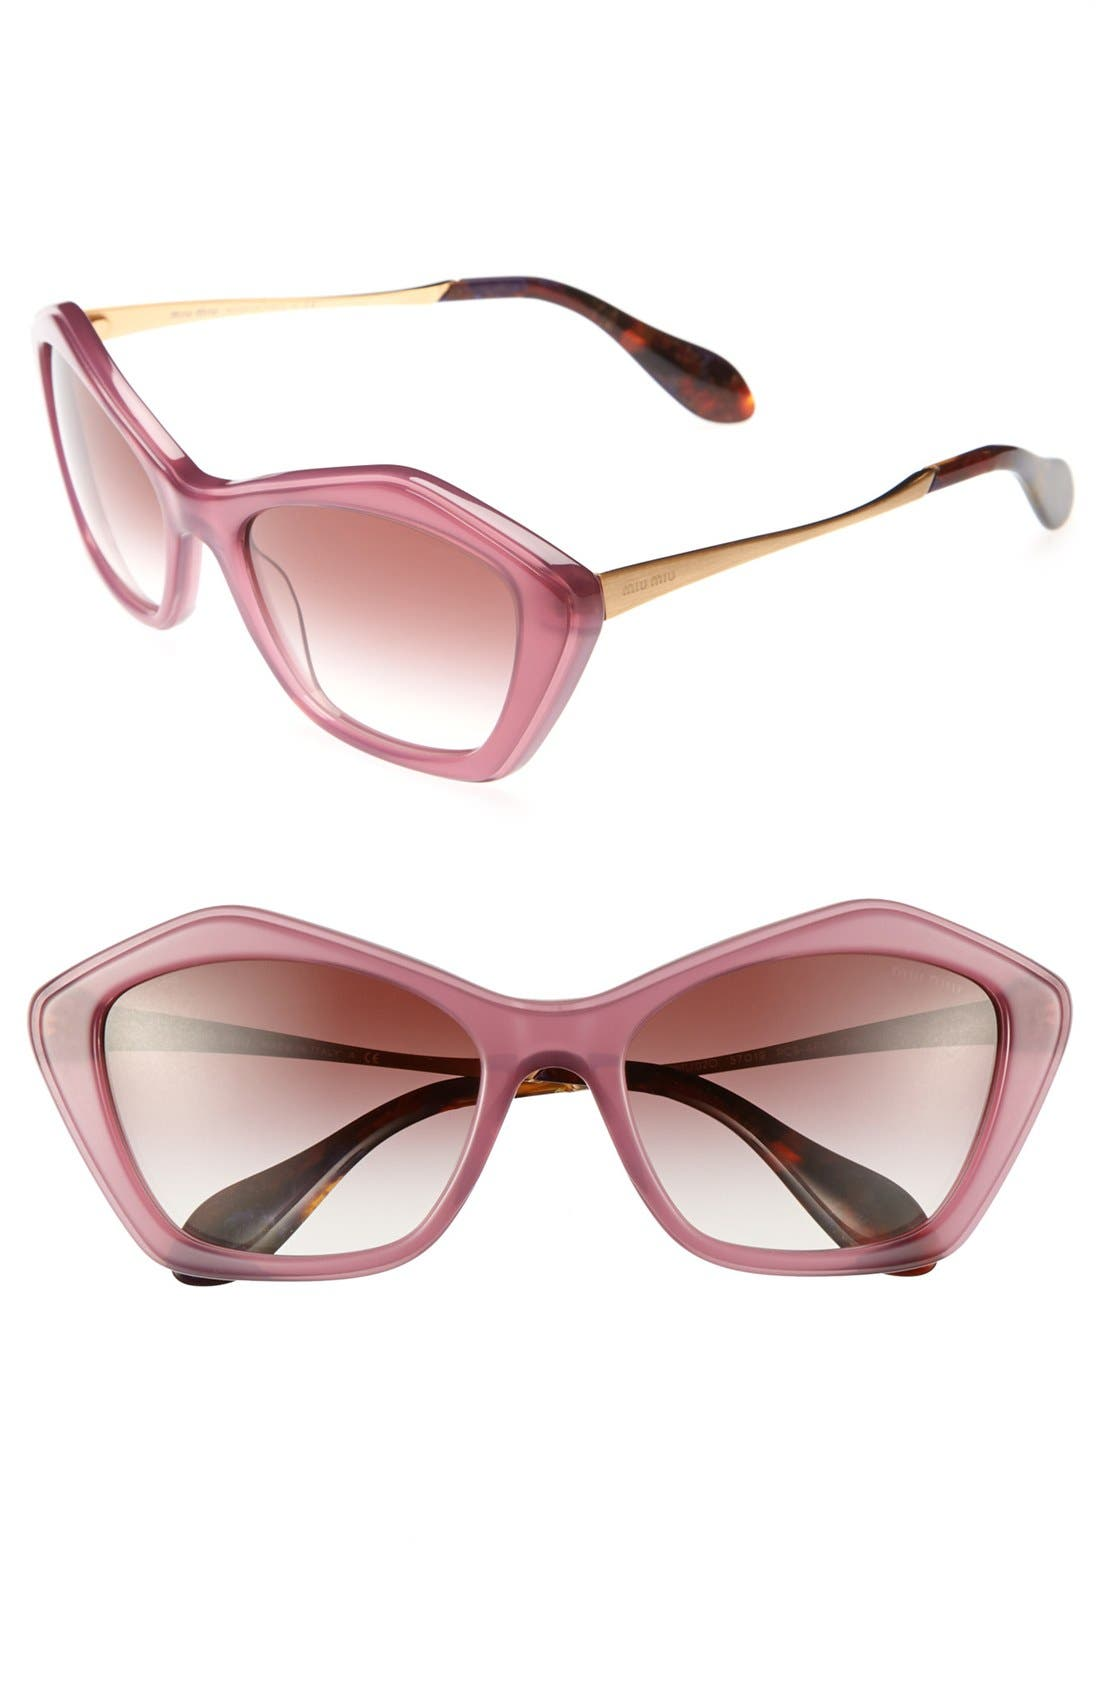 Alternate Image 1 Selected - Miu Miu Angled 57mm Sunglasses